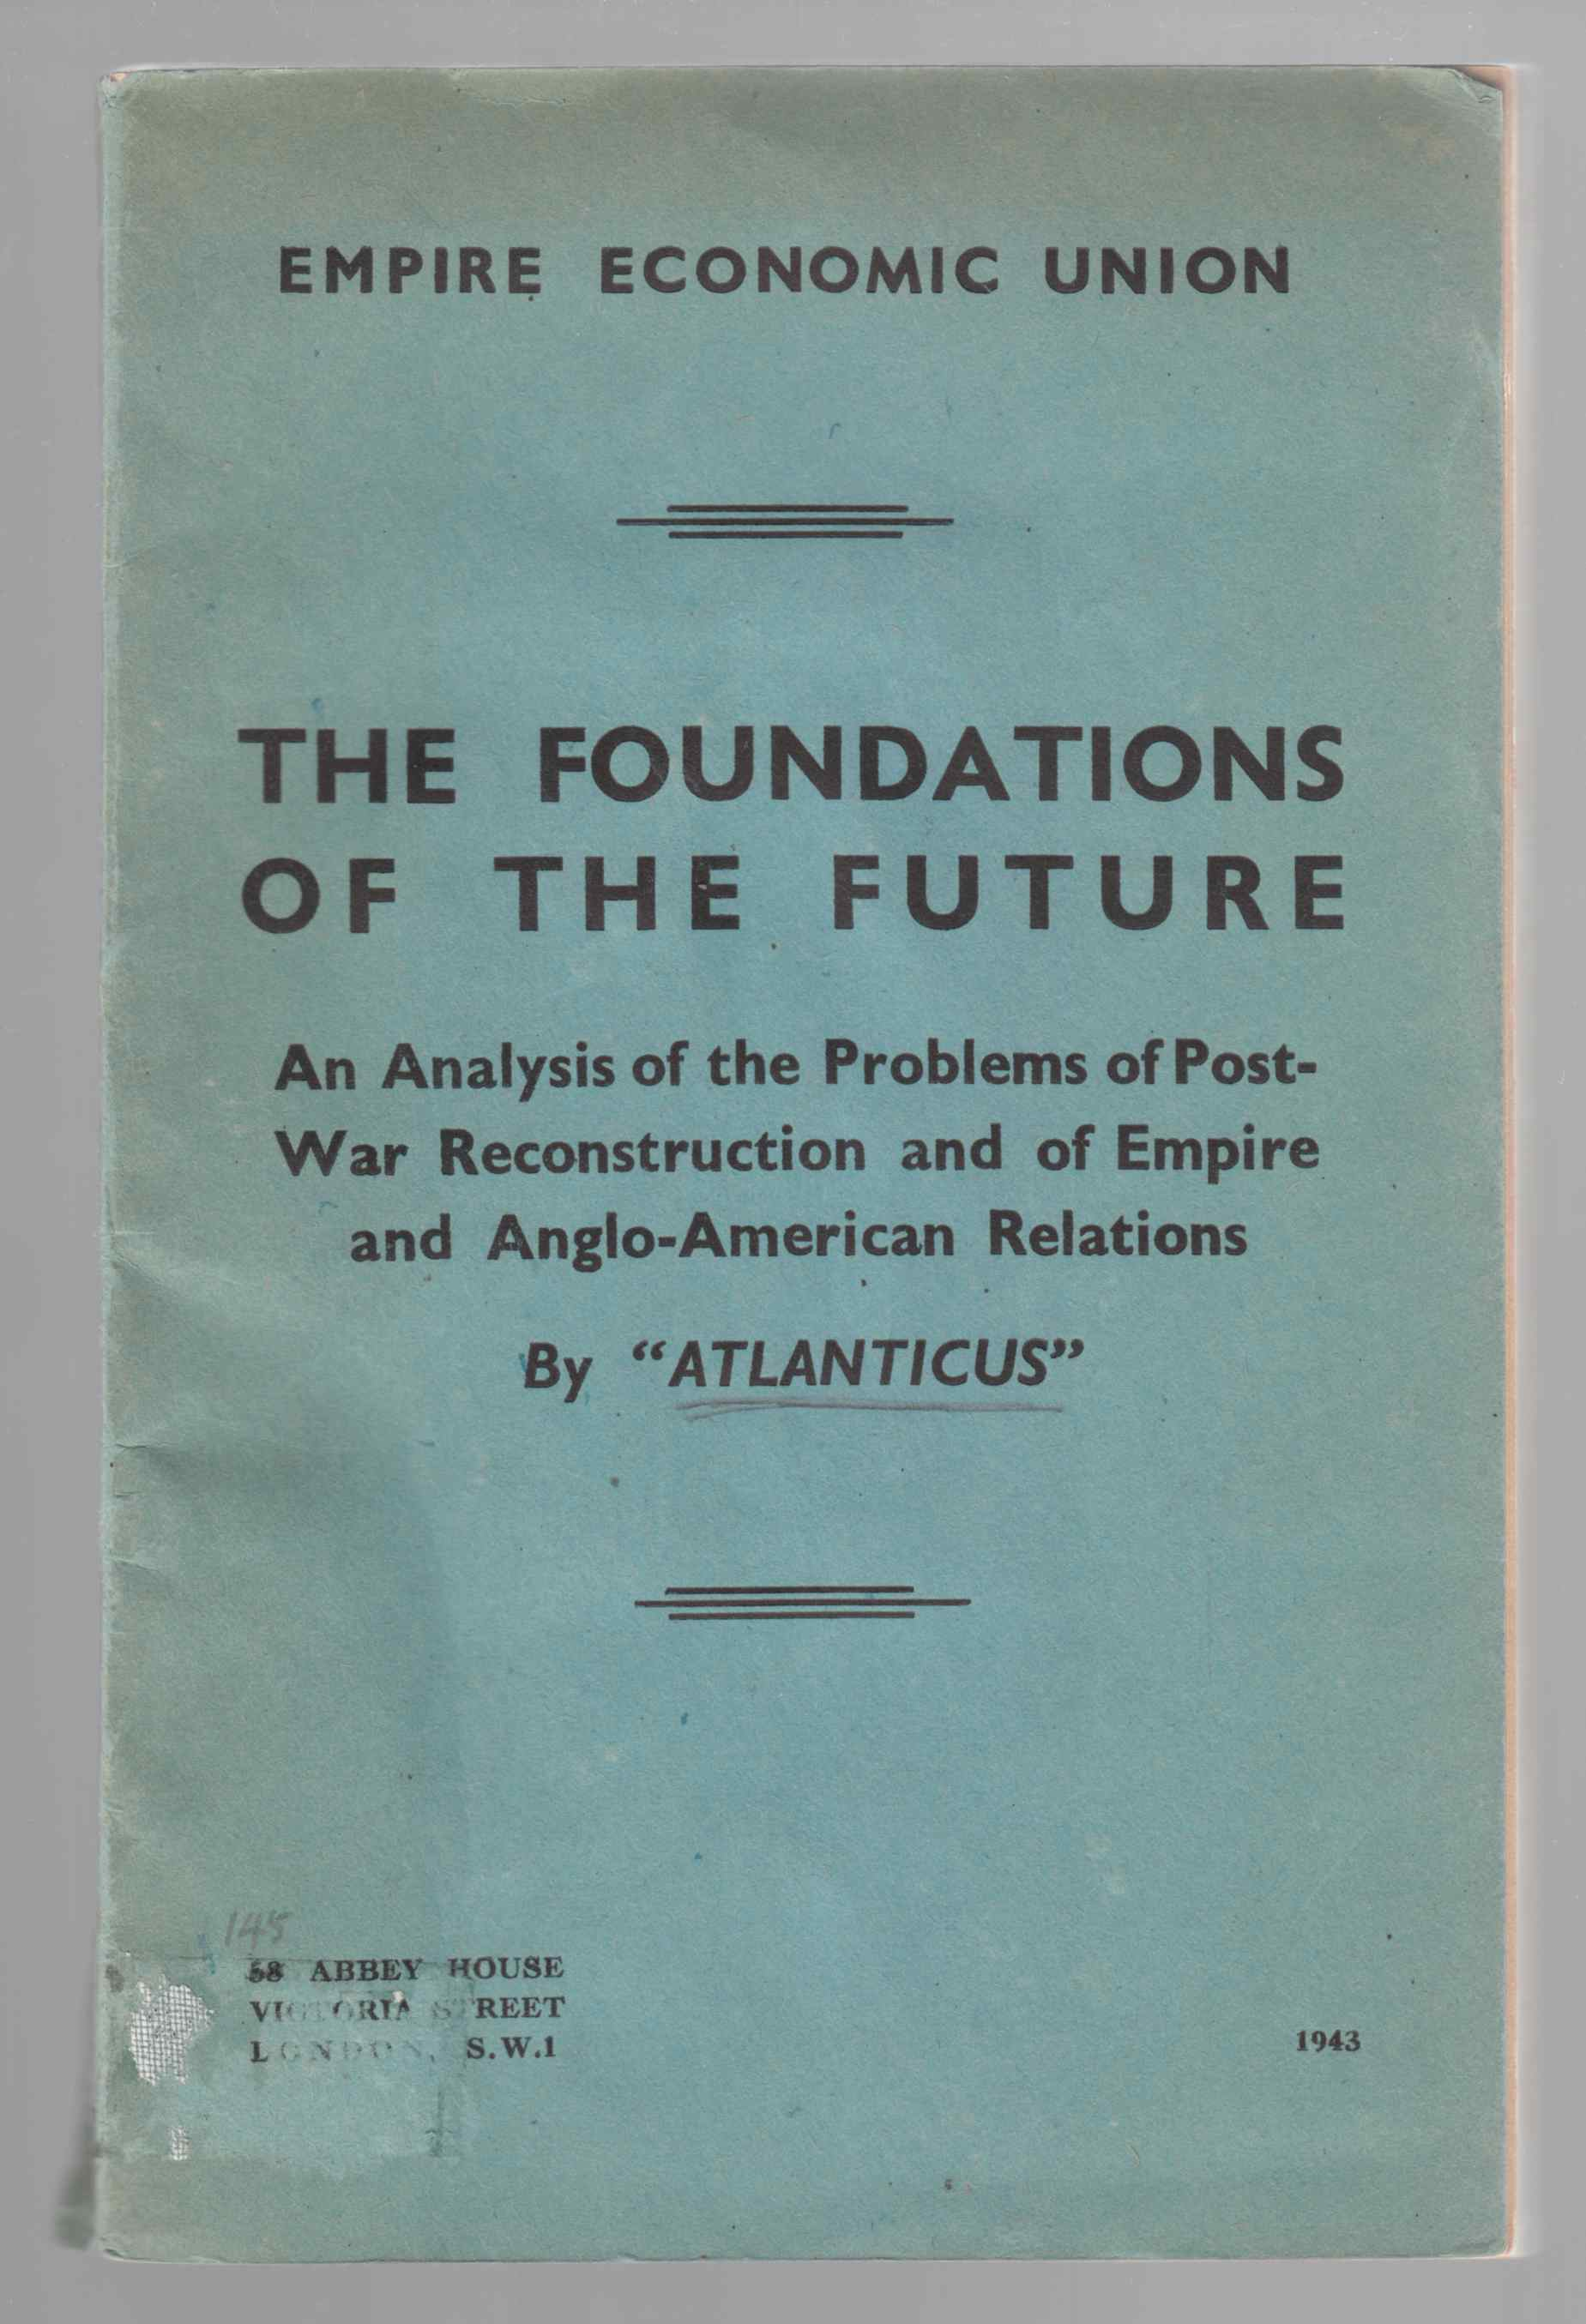 Image for The Foundations of the Future An Analysis of the Problems of Post-War Reconstruction and of Empire and Anglo-American Relations